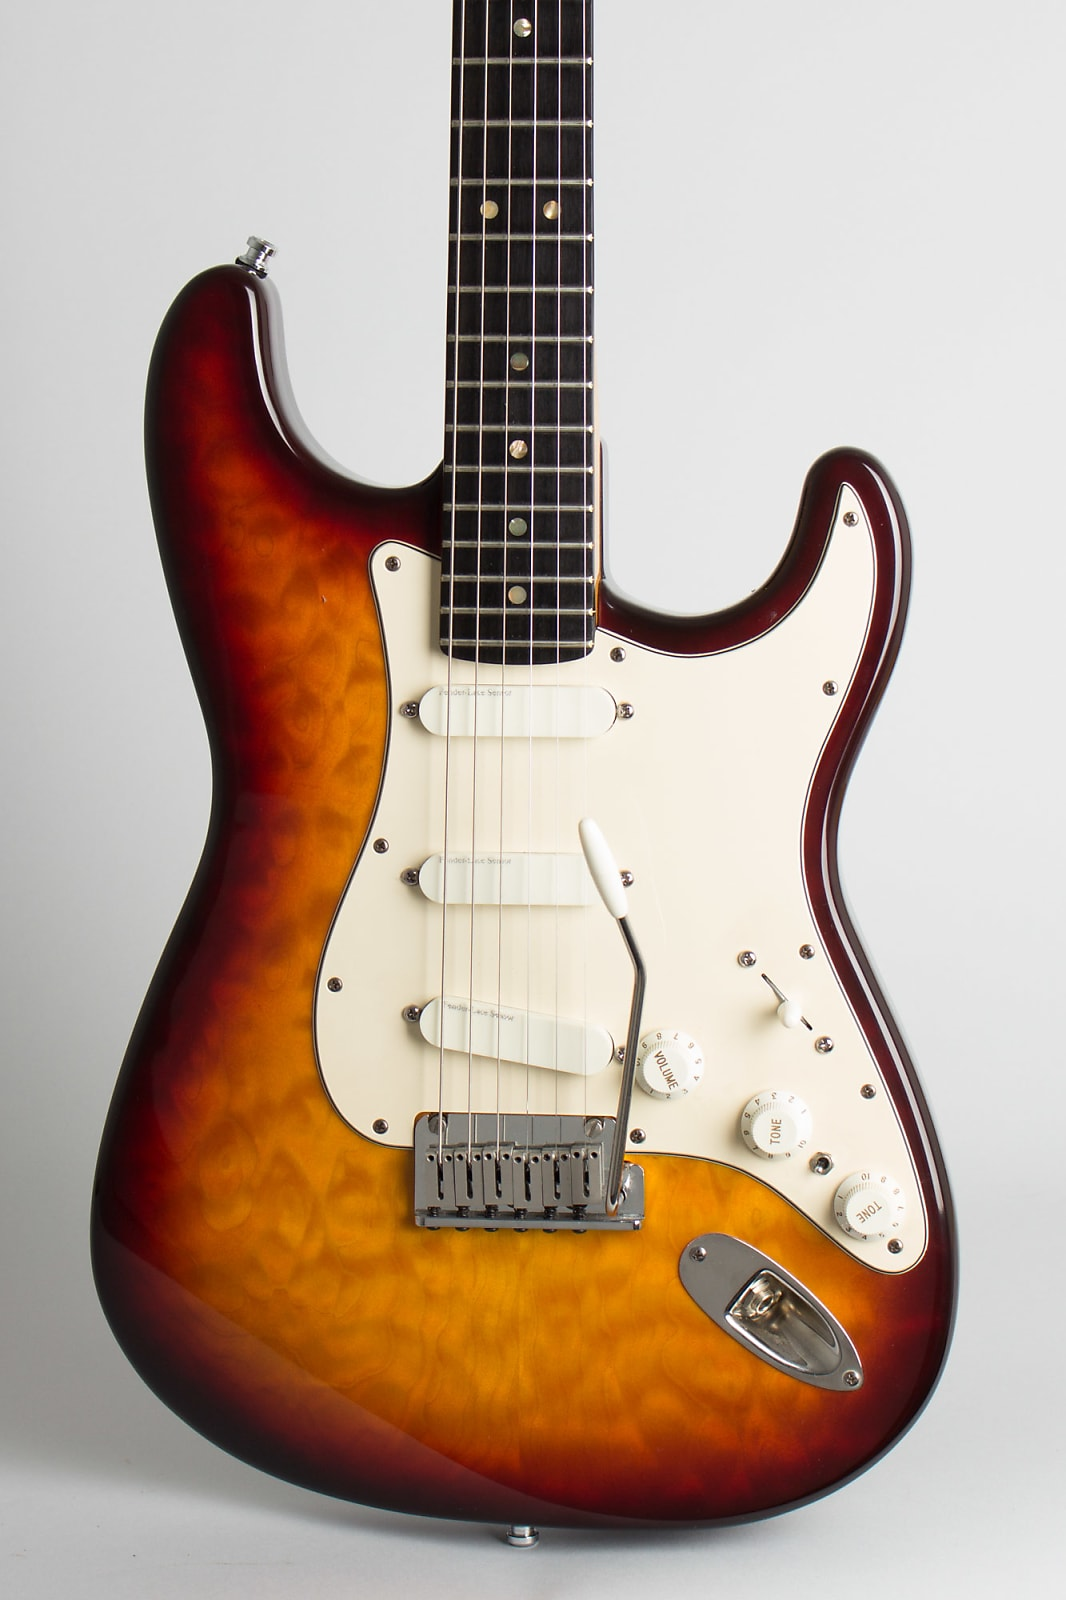 Fender  Stratocaster 35th Anniversary Solid Body Electric Guitar (1989), ser. #212 of 500, original tweed hard shell case.